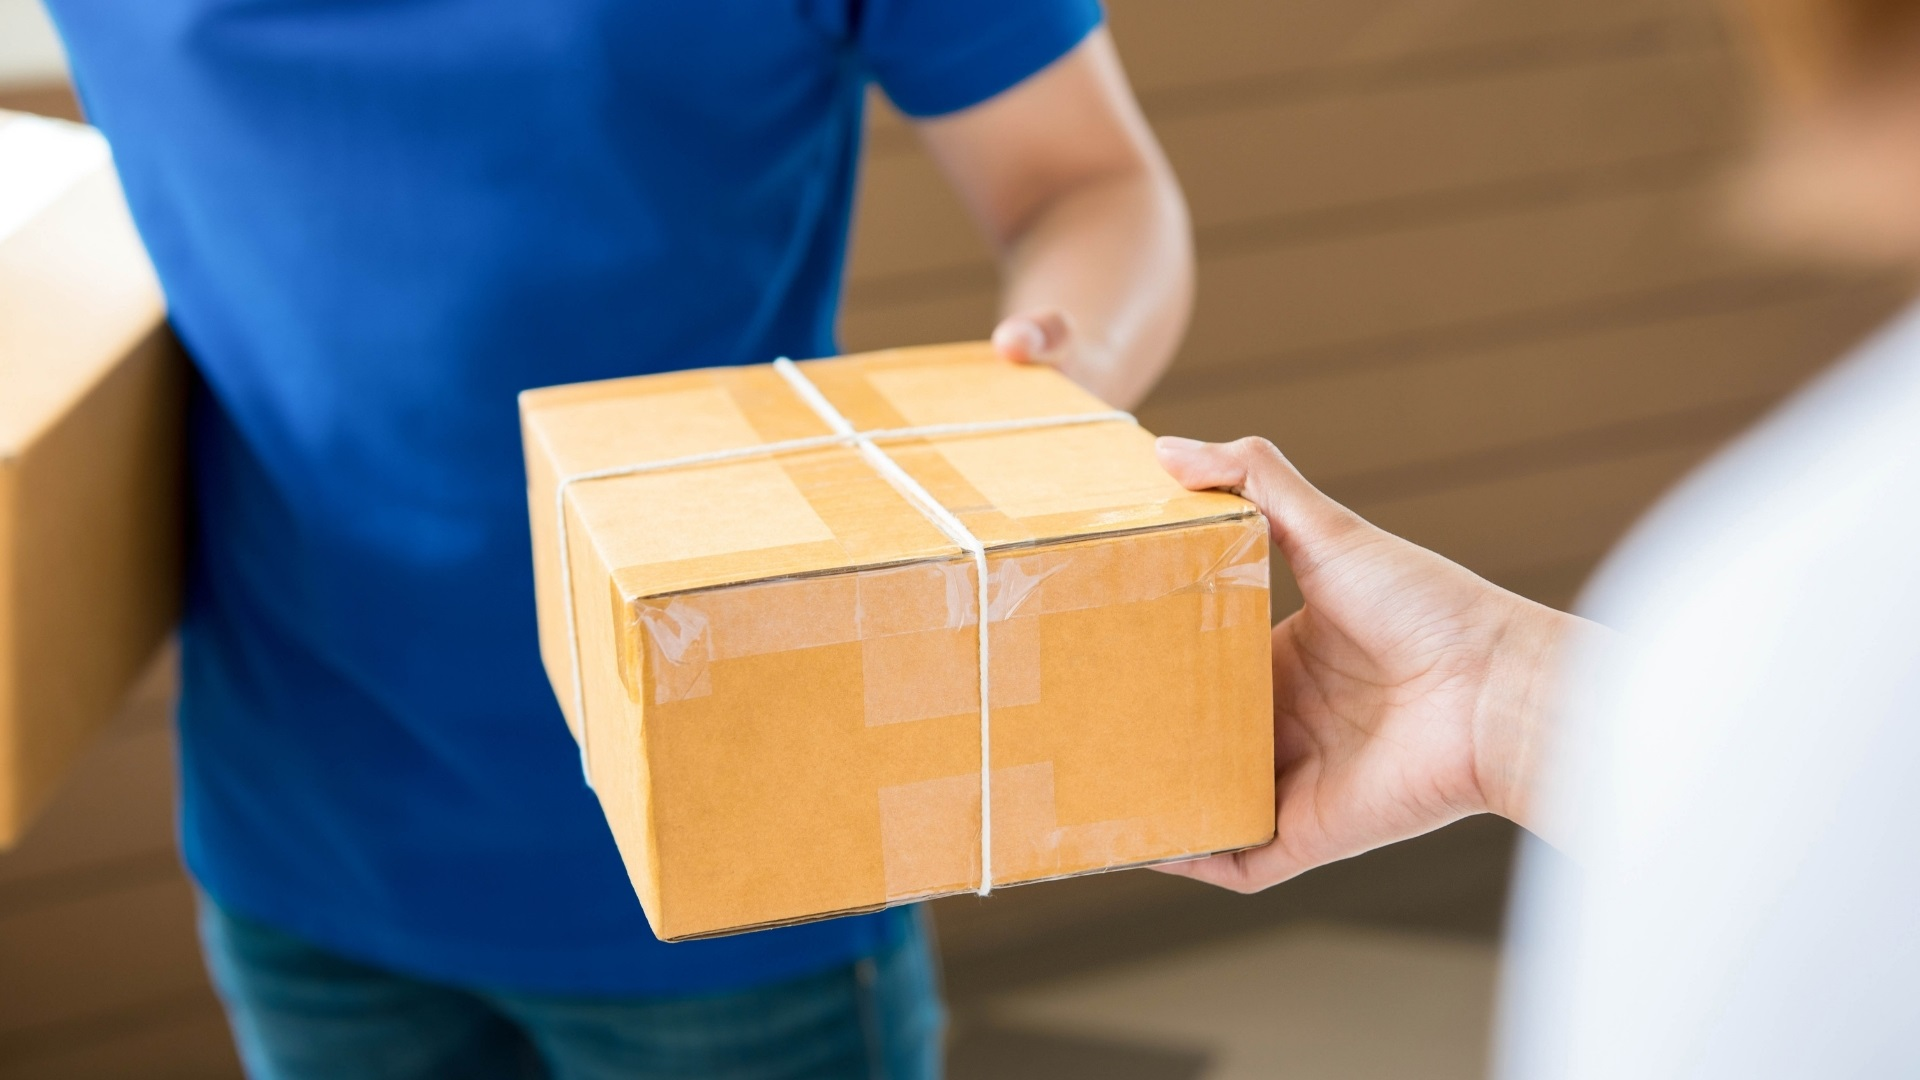 Minister calls for action on parcel deliveries to NI - Newry Times - Brexit NI news